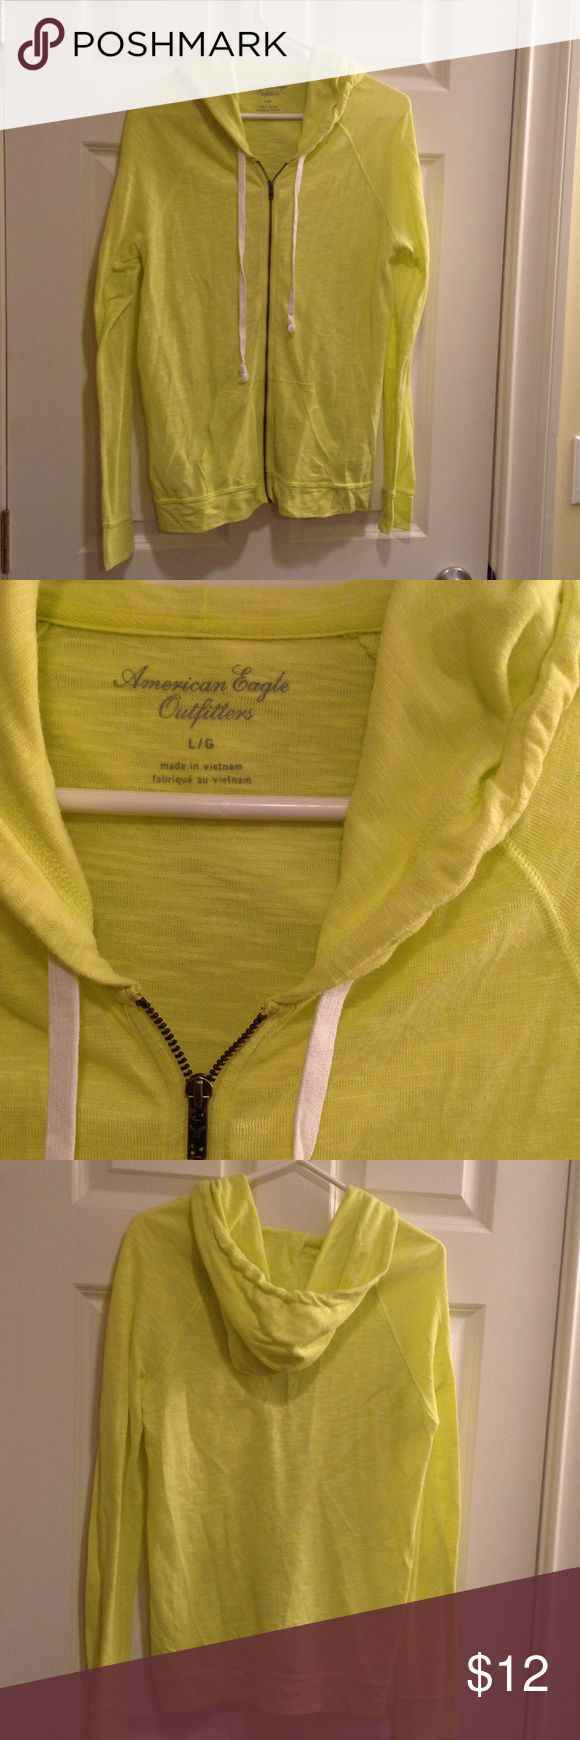 American eagle yellow zip up Bright yellow American eagle zip up hoodie only worn a couple times in great condition! Perfect for casual outfit American Eagle Outfitters Sweaters